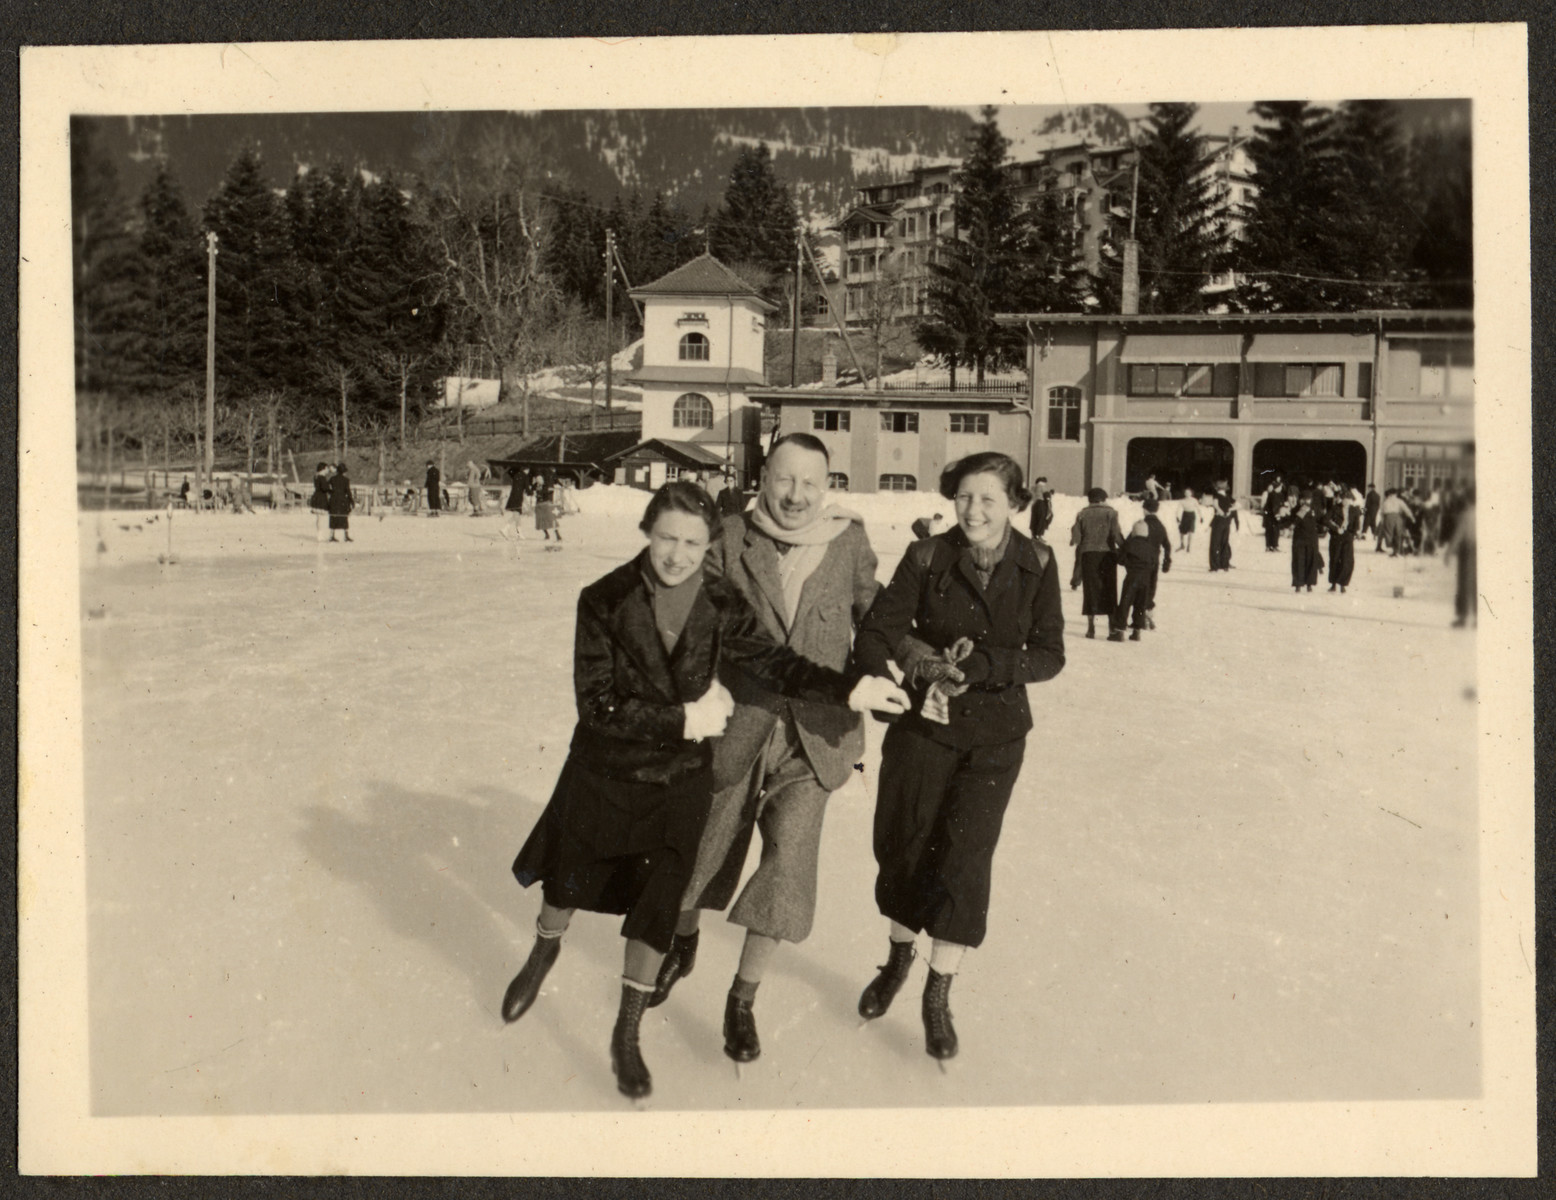 The Bing family goes skating (possibly in Switzerland).  From left to right are Erna Stern Bing, Ernst Bing, and Annelise Bing.